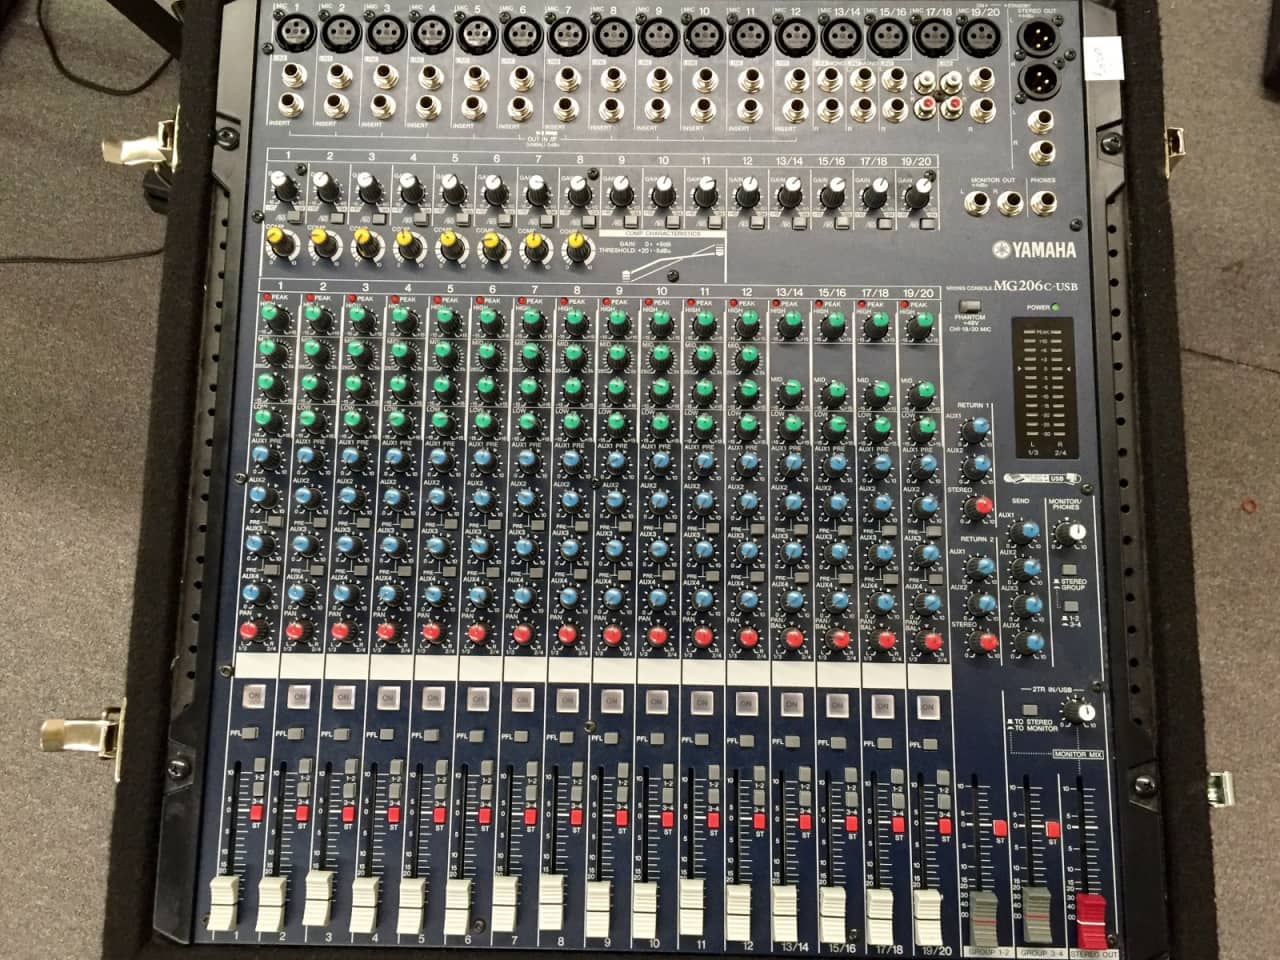 Yamaha mg206c usb mixing console main street music reverb for Yamaha mixing boards